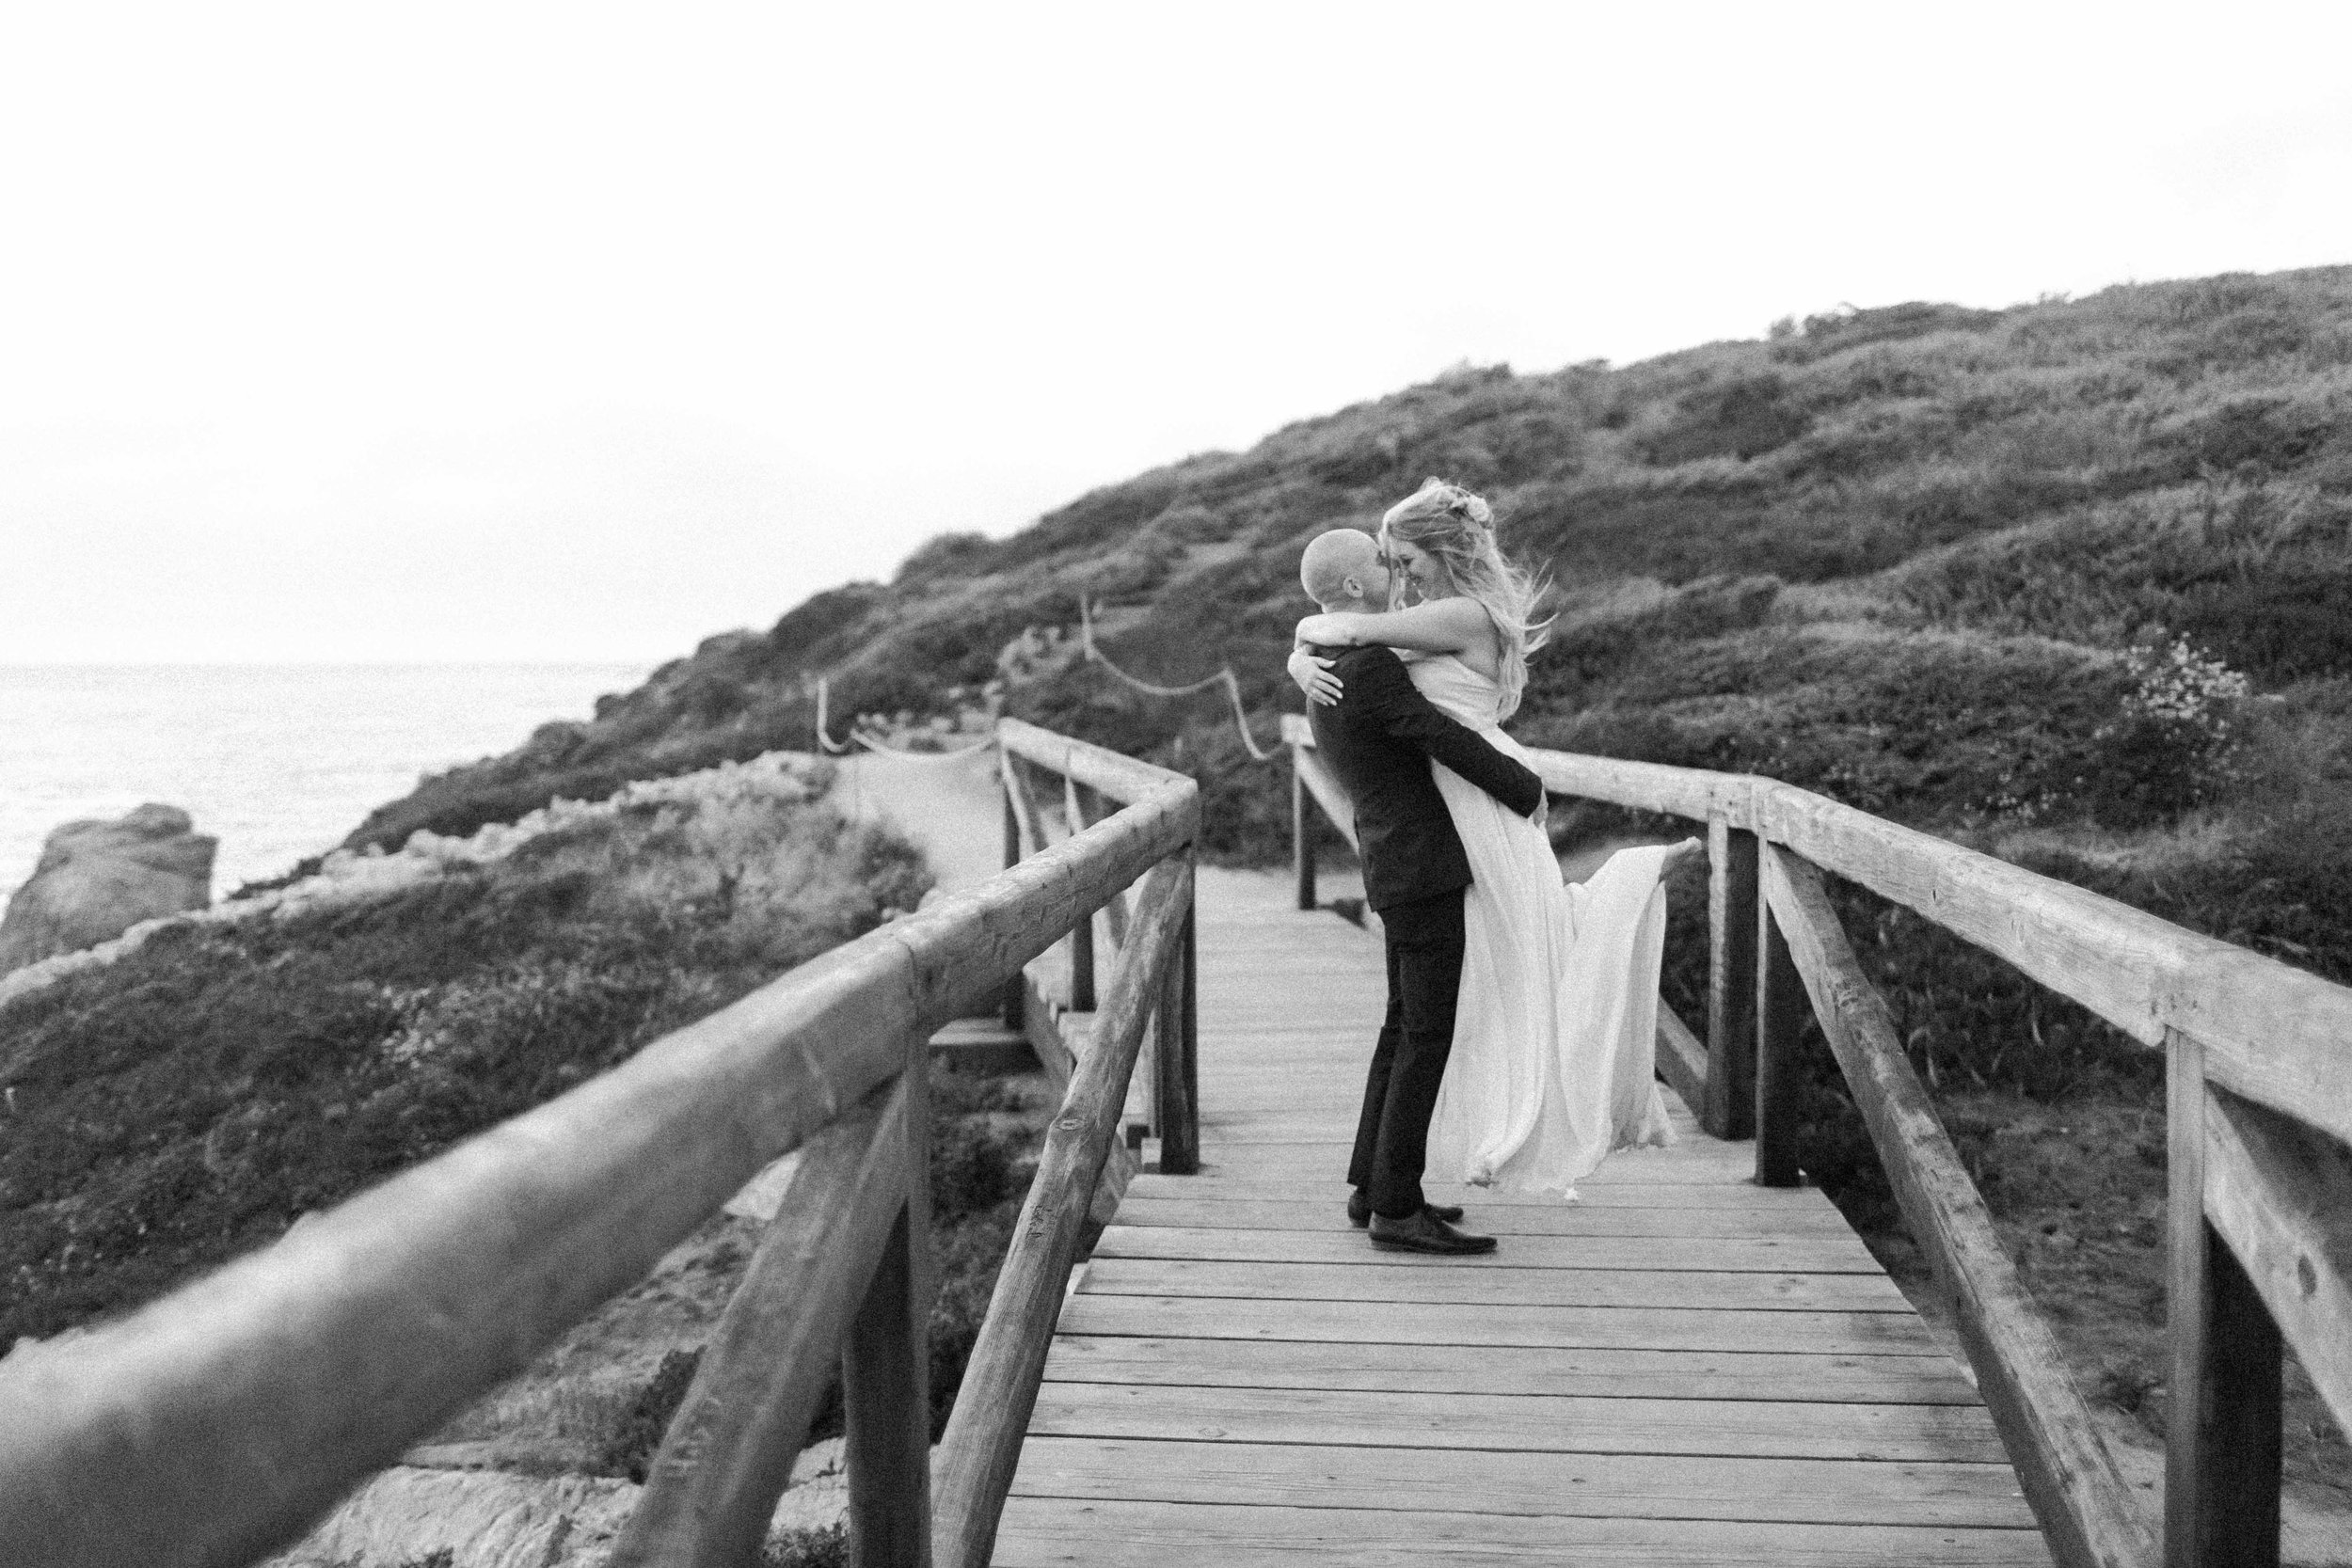 16-7-Andrew-Christina-Big-Sur-Elopement-Barkis-Co-Photography-BW-158.jpg